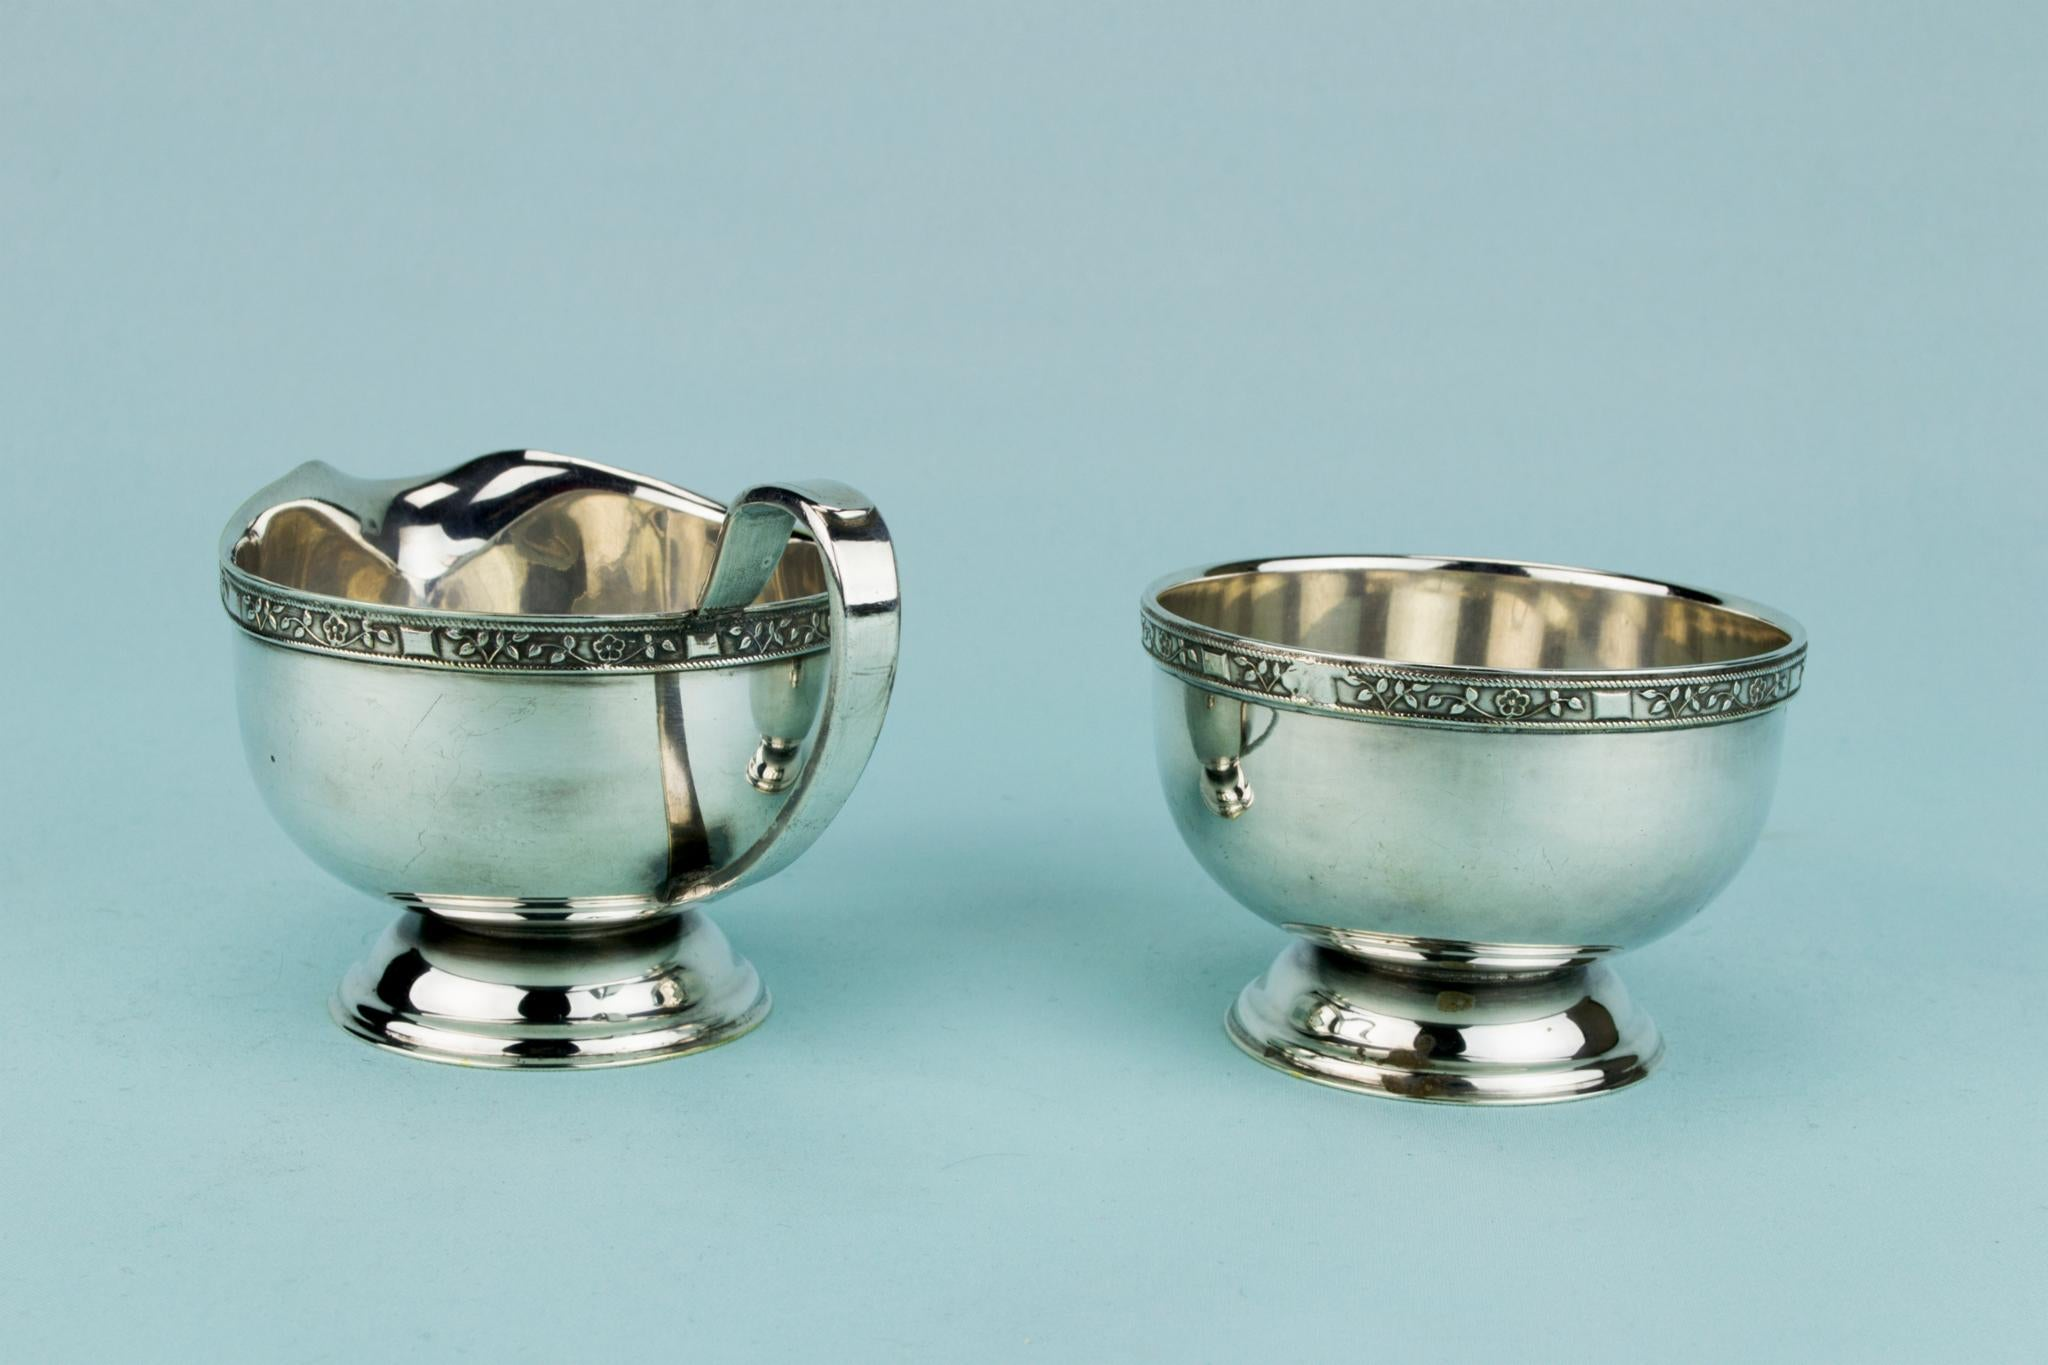 Tea and Coffee Set Silver Plated, English 1950s